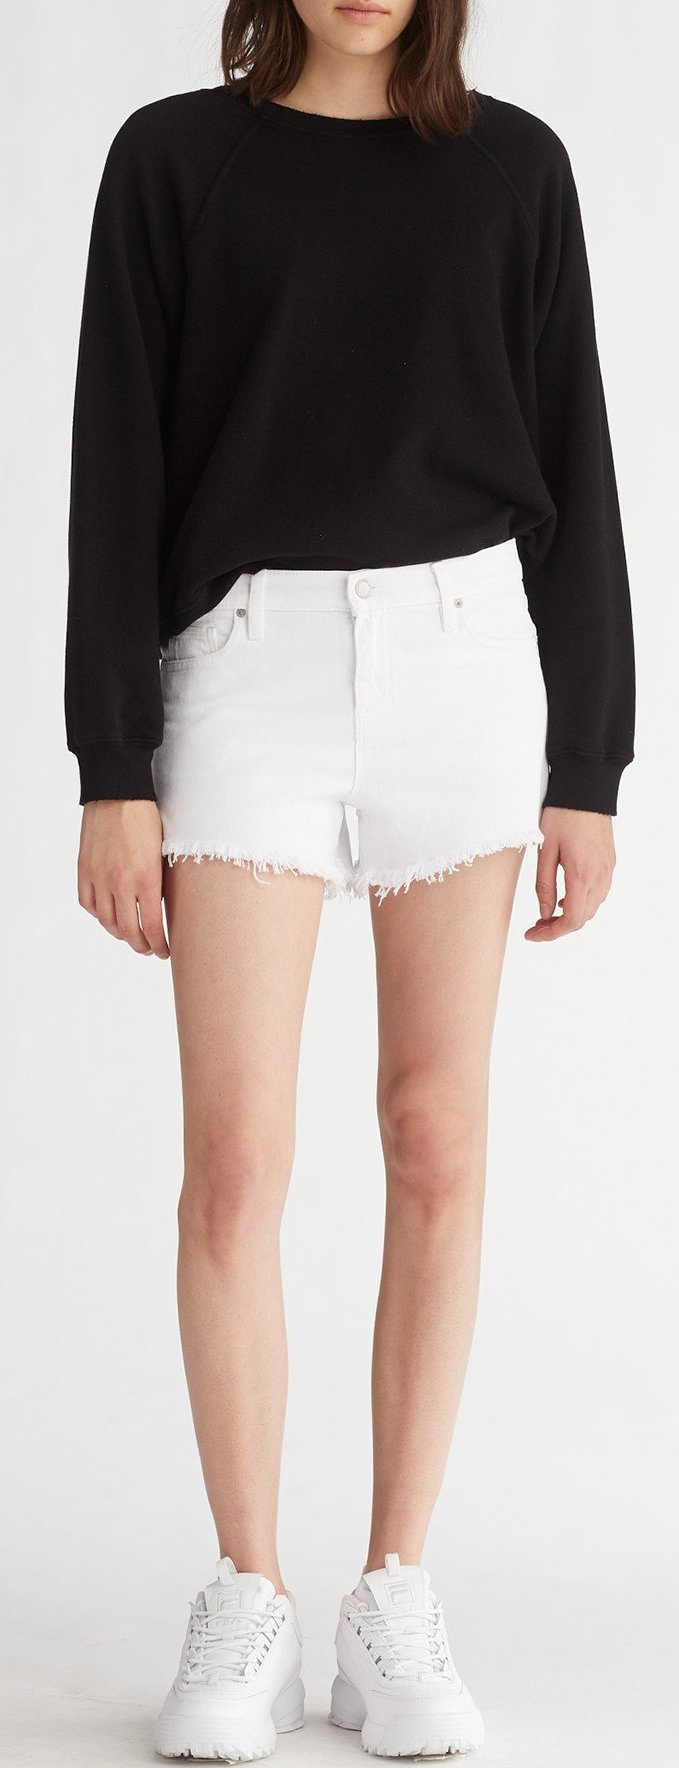 Hudson Gemma Midrise Cut Off Short in White WMR644DWM